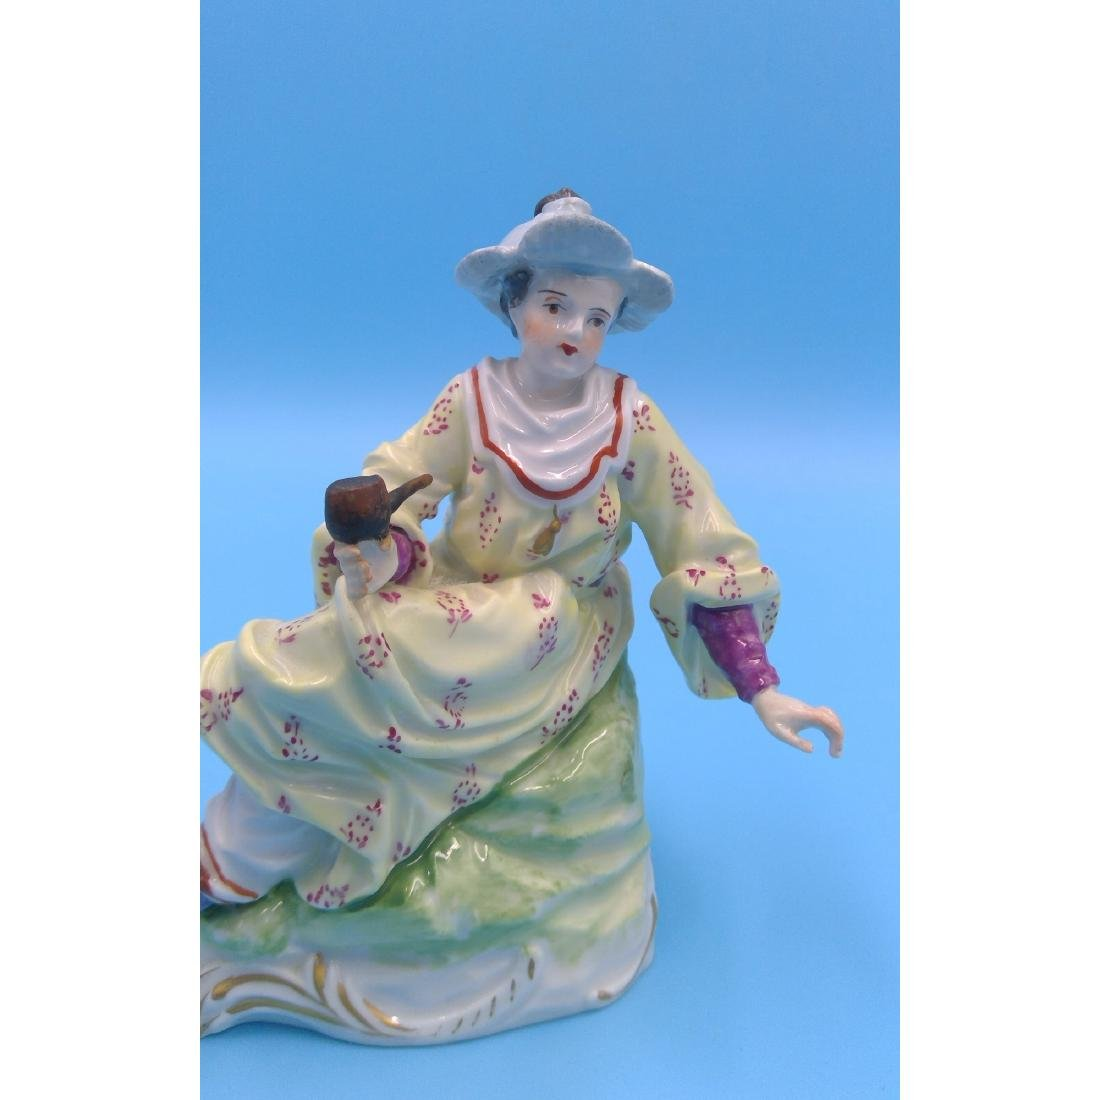 DRESDEN GERMAN PORCELAIN FIGURINE LADY W PIPE - 5